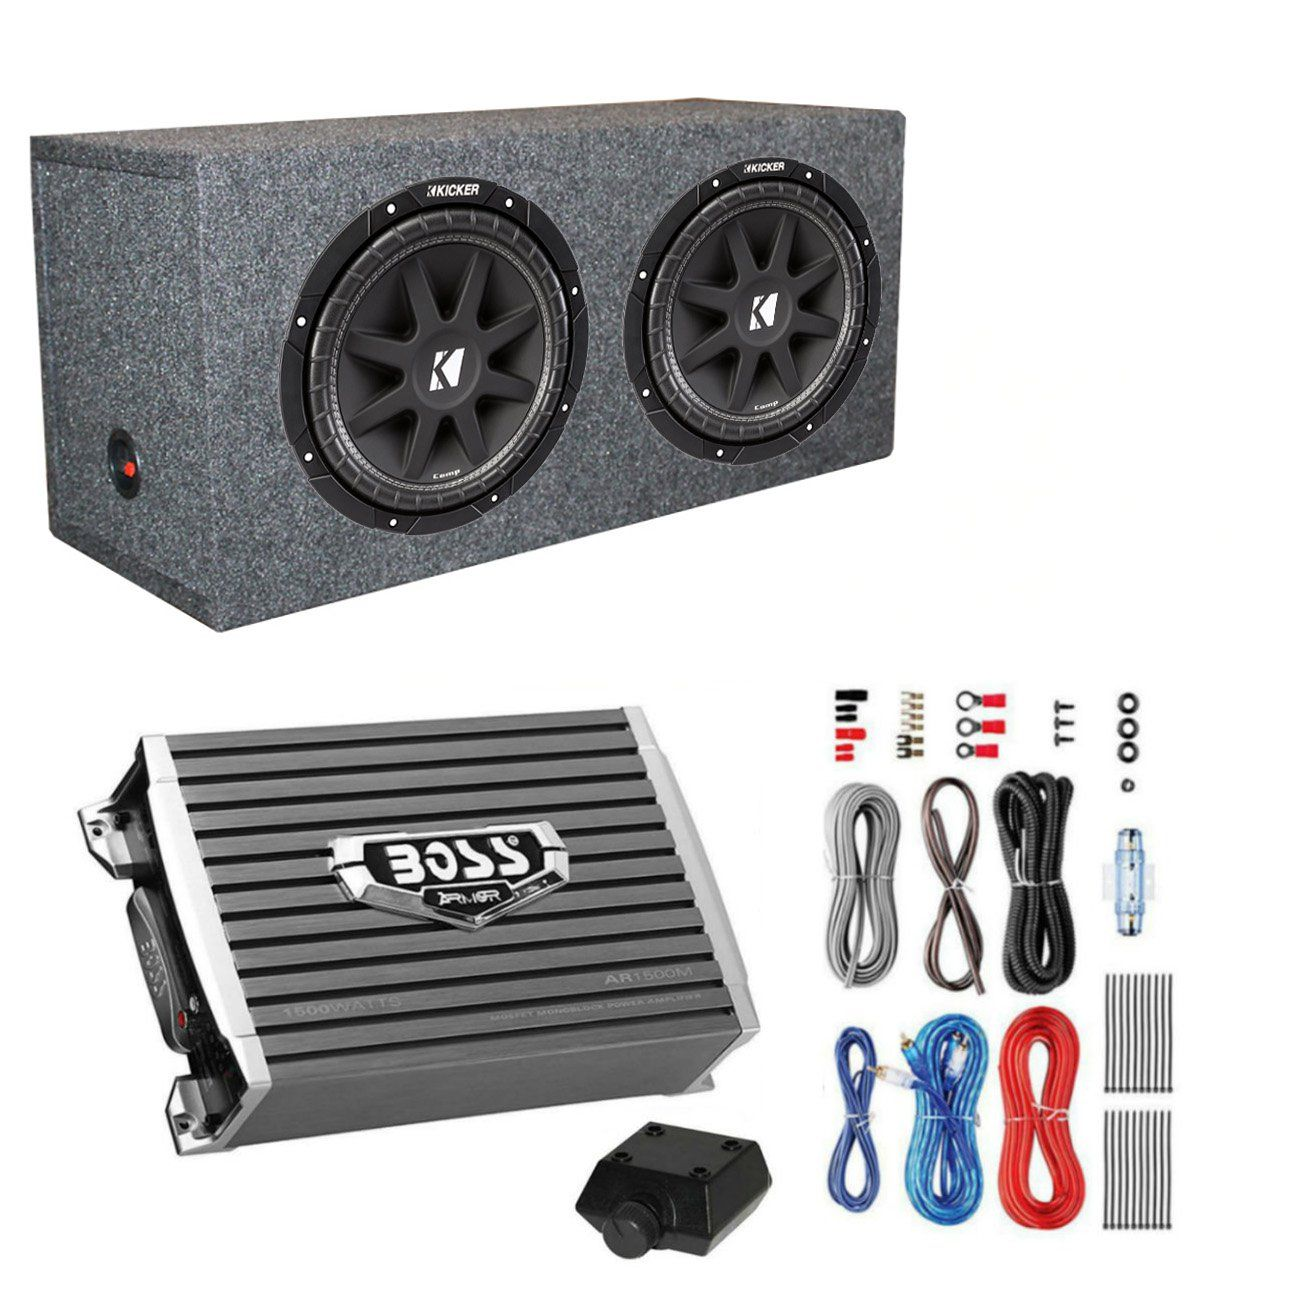 Kicker 600 Watt 12 Subwoofers (Pair) Sealed Box Enclosure ... on rockford fosgate wiring kit, jl audio wiring kit, kicker amp with 8, 0 gauge amp kit,